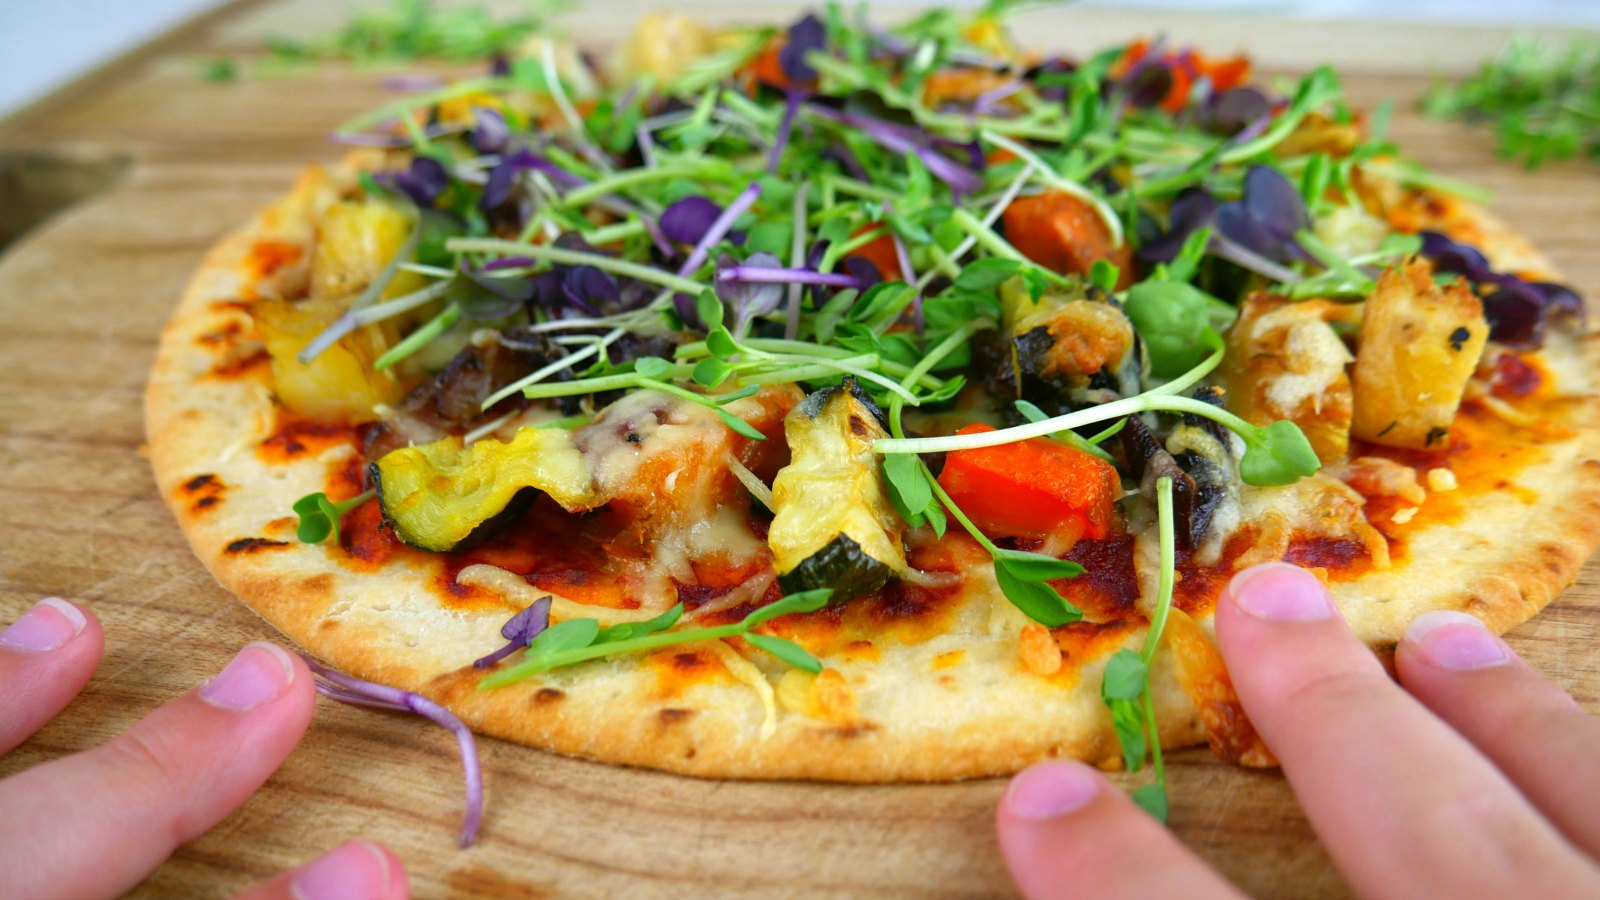 How to turn a microgreens kit into amazing pizza.